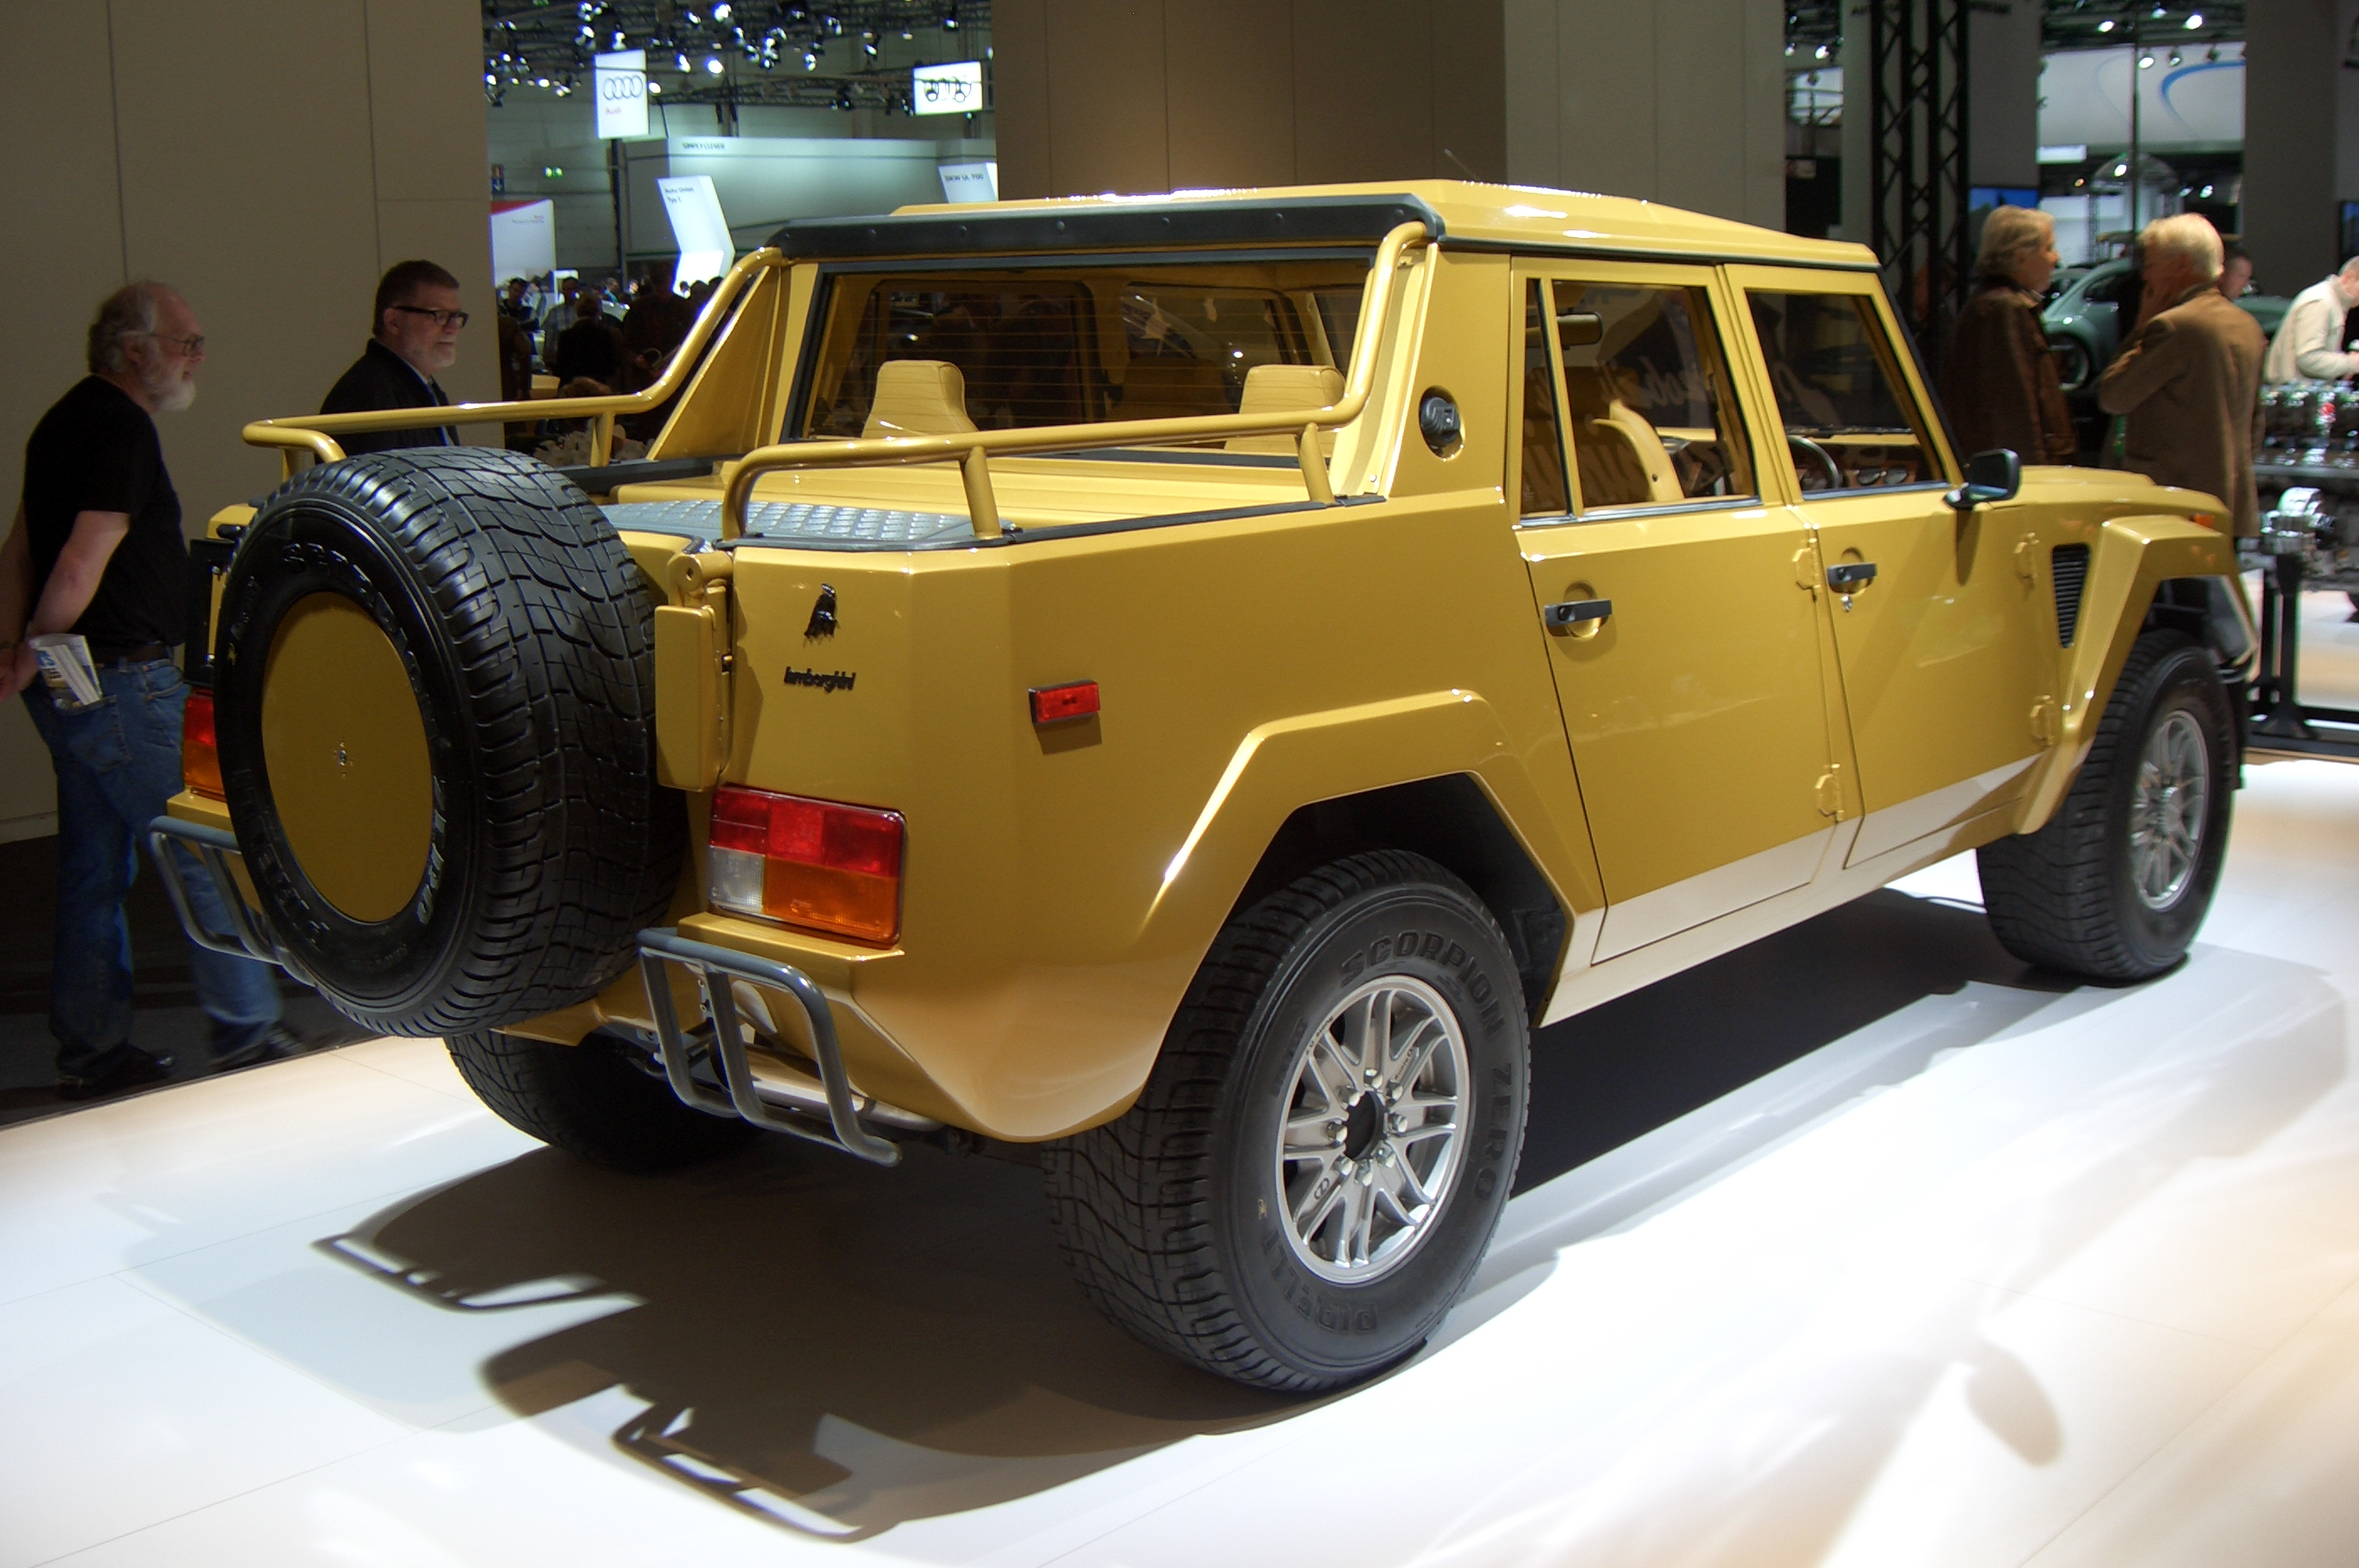 https://upload.wikimedia.org/wikipedia/commons/4/4d/Lamborghini_LM002_Gen1_1986-1992_backright_2012-03-22_A.jpg